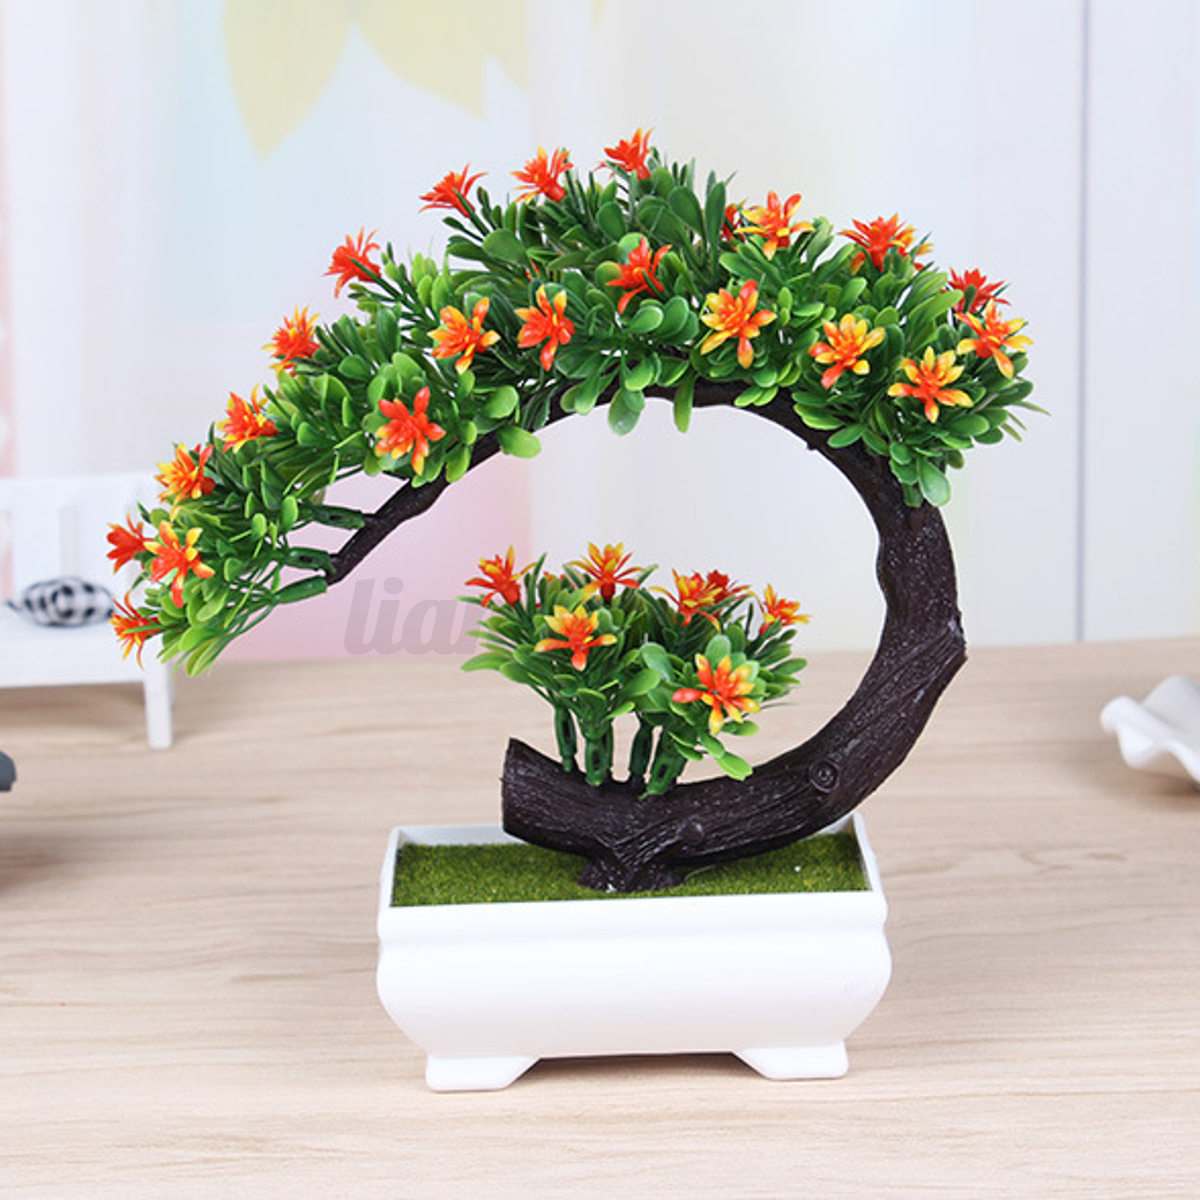 20cm artificielle plante pot fleur bonsa arbre jardin for Plante artificielle jardin